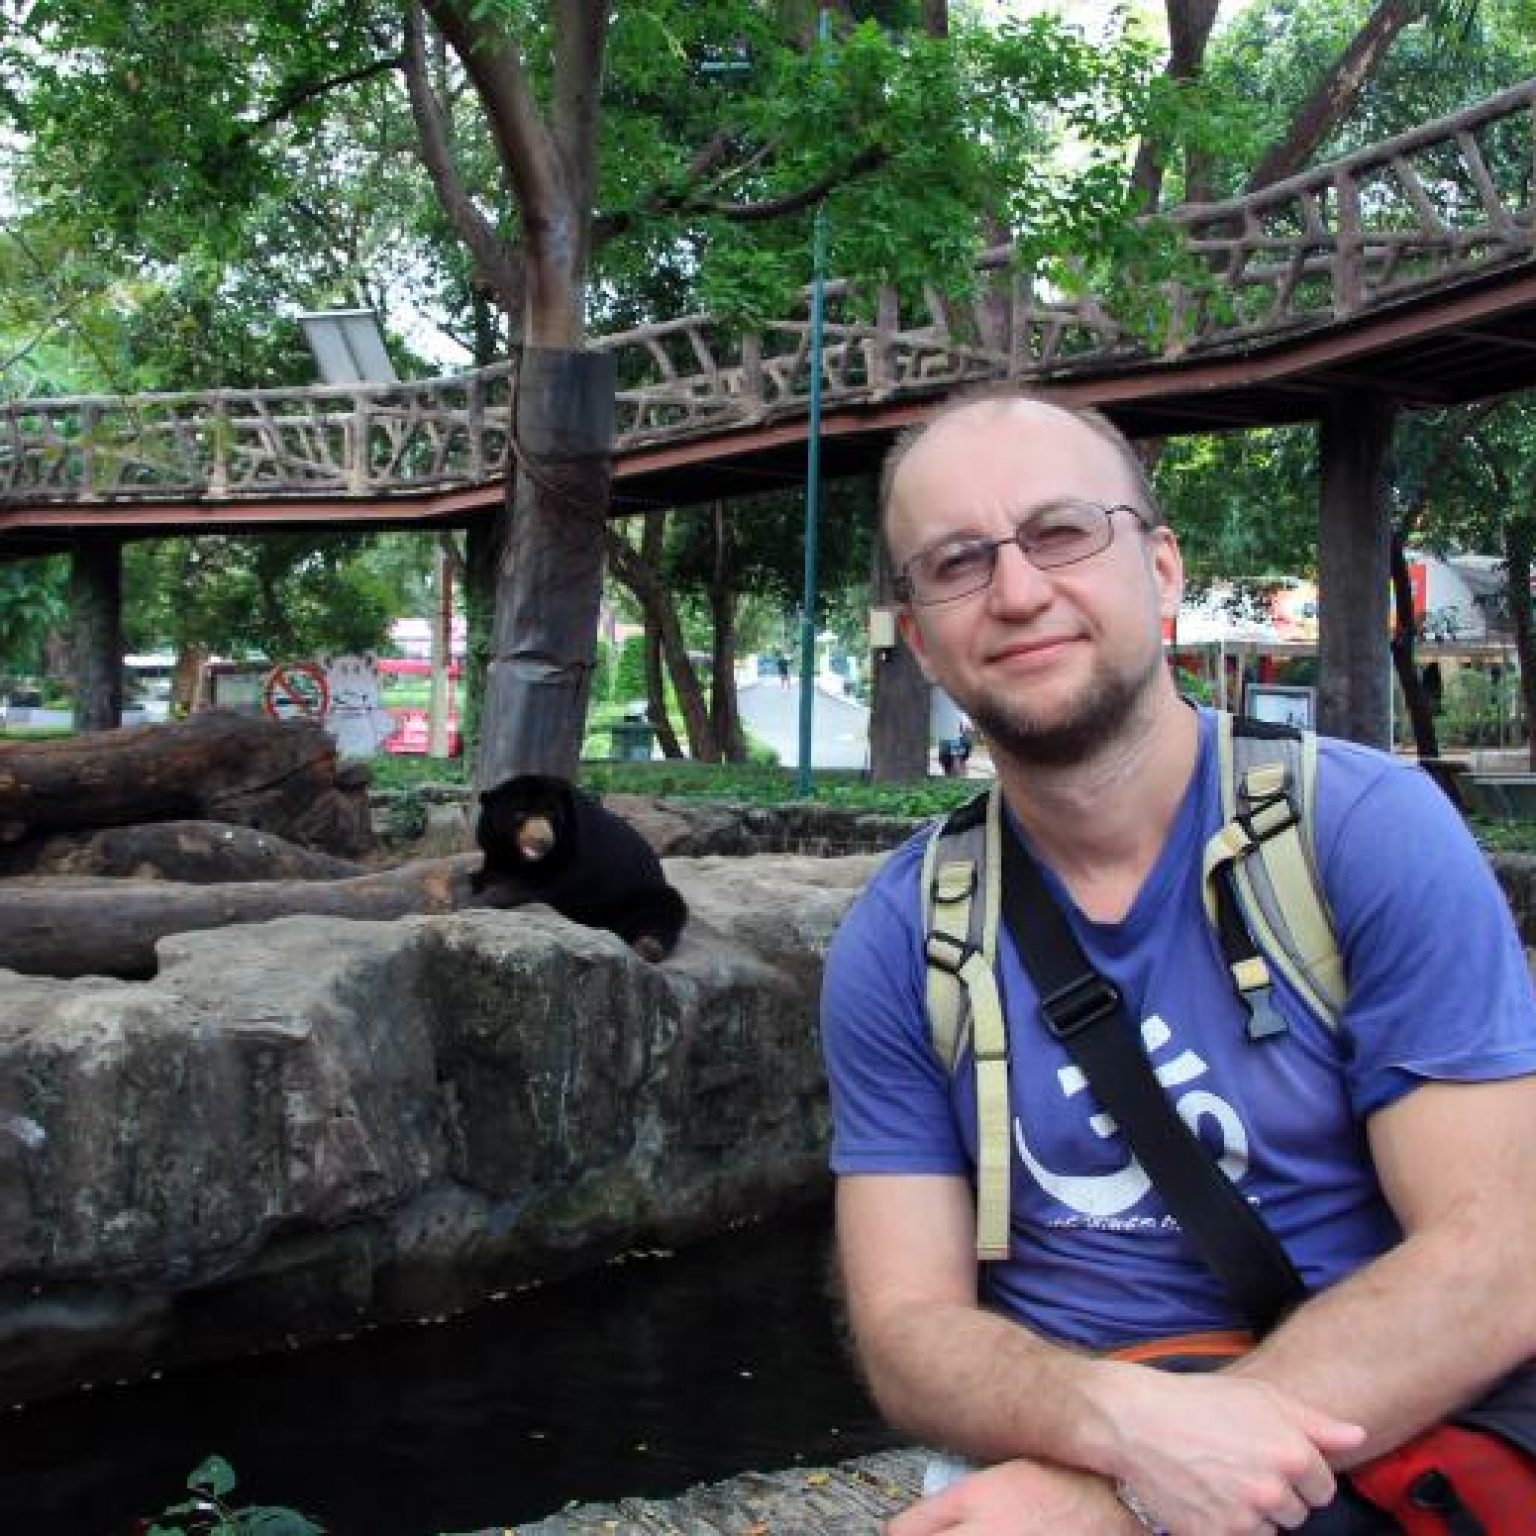 Attractions in Bangkok: Dusit Zoo